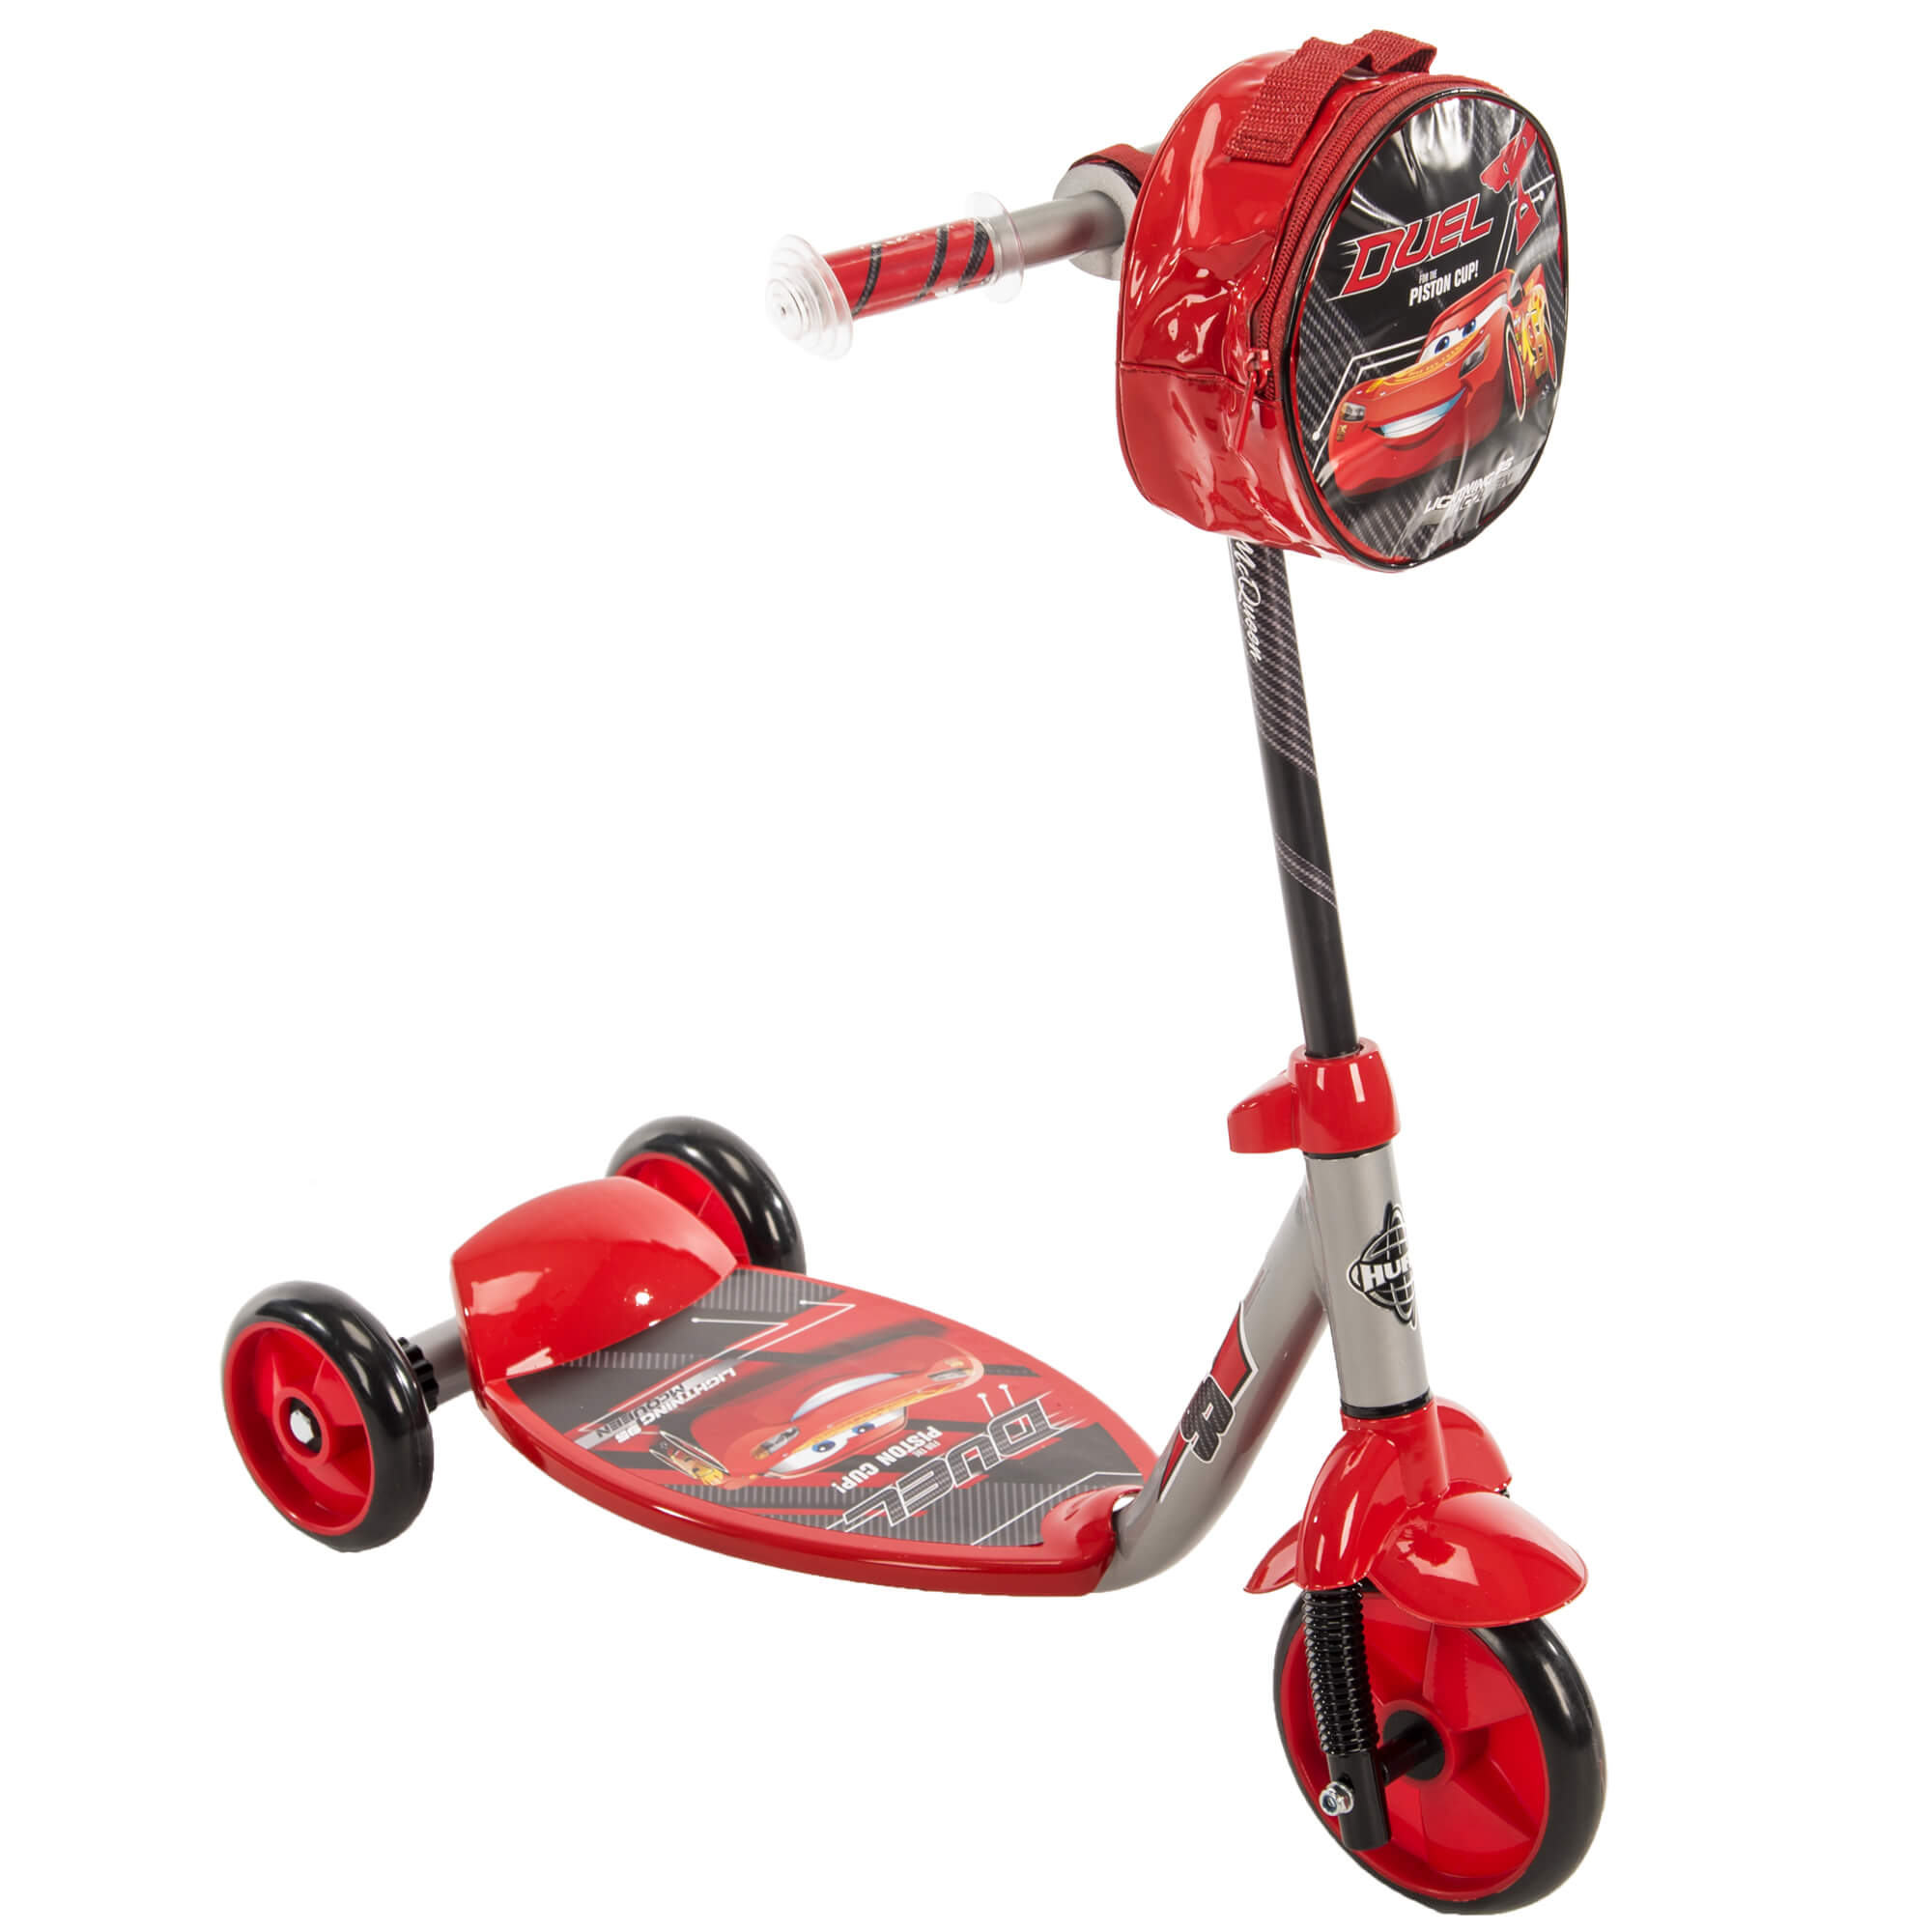 Disney Pixar Cars 3 Boys' 3-Wheel Preschool Scooter, by Huffy